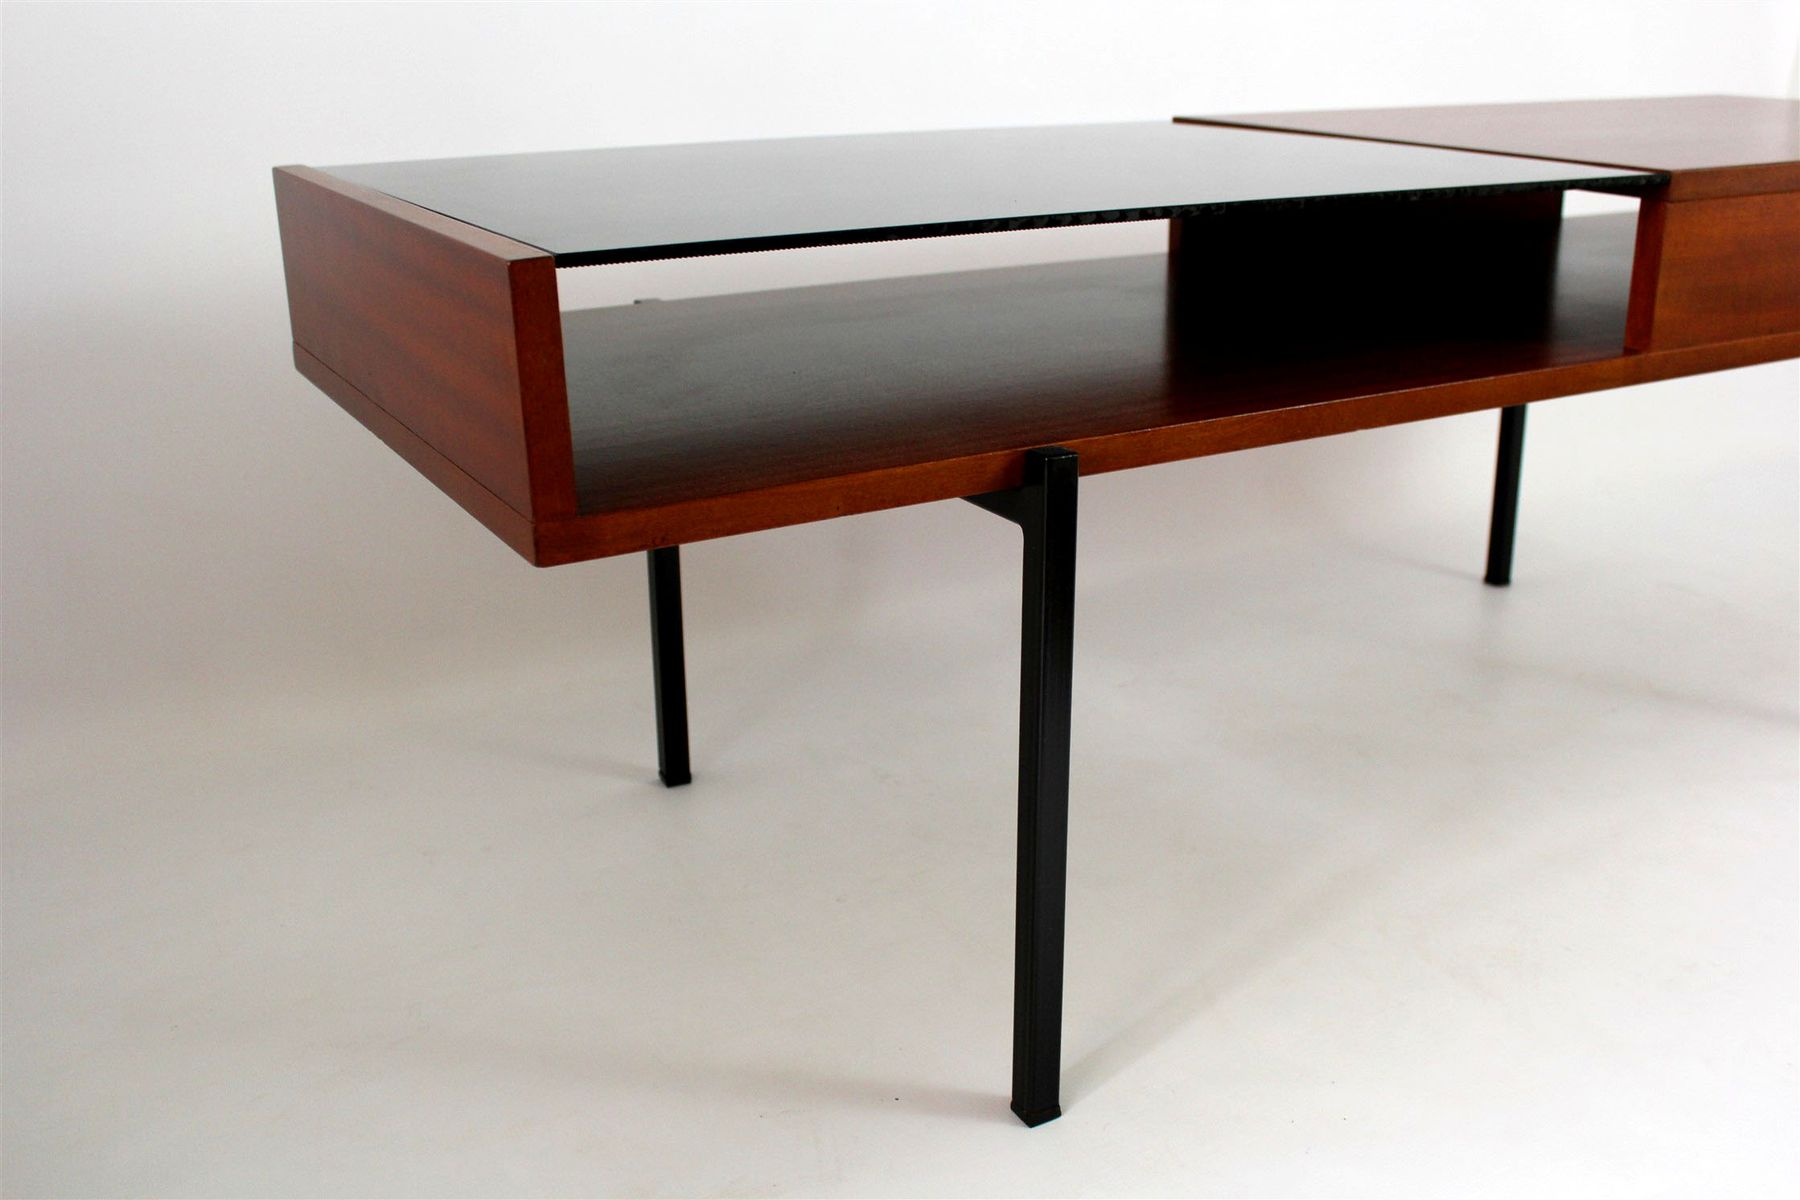 table basse en acajou avec verre noir 1970s en vente sur. Black Bedroom Furniture Sets. Home Design Ideas